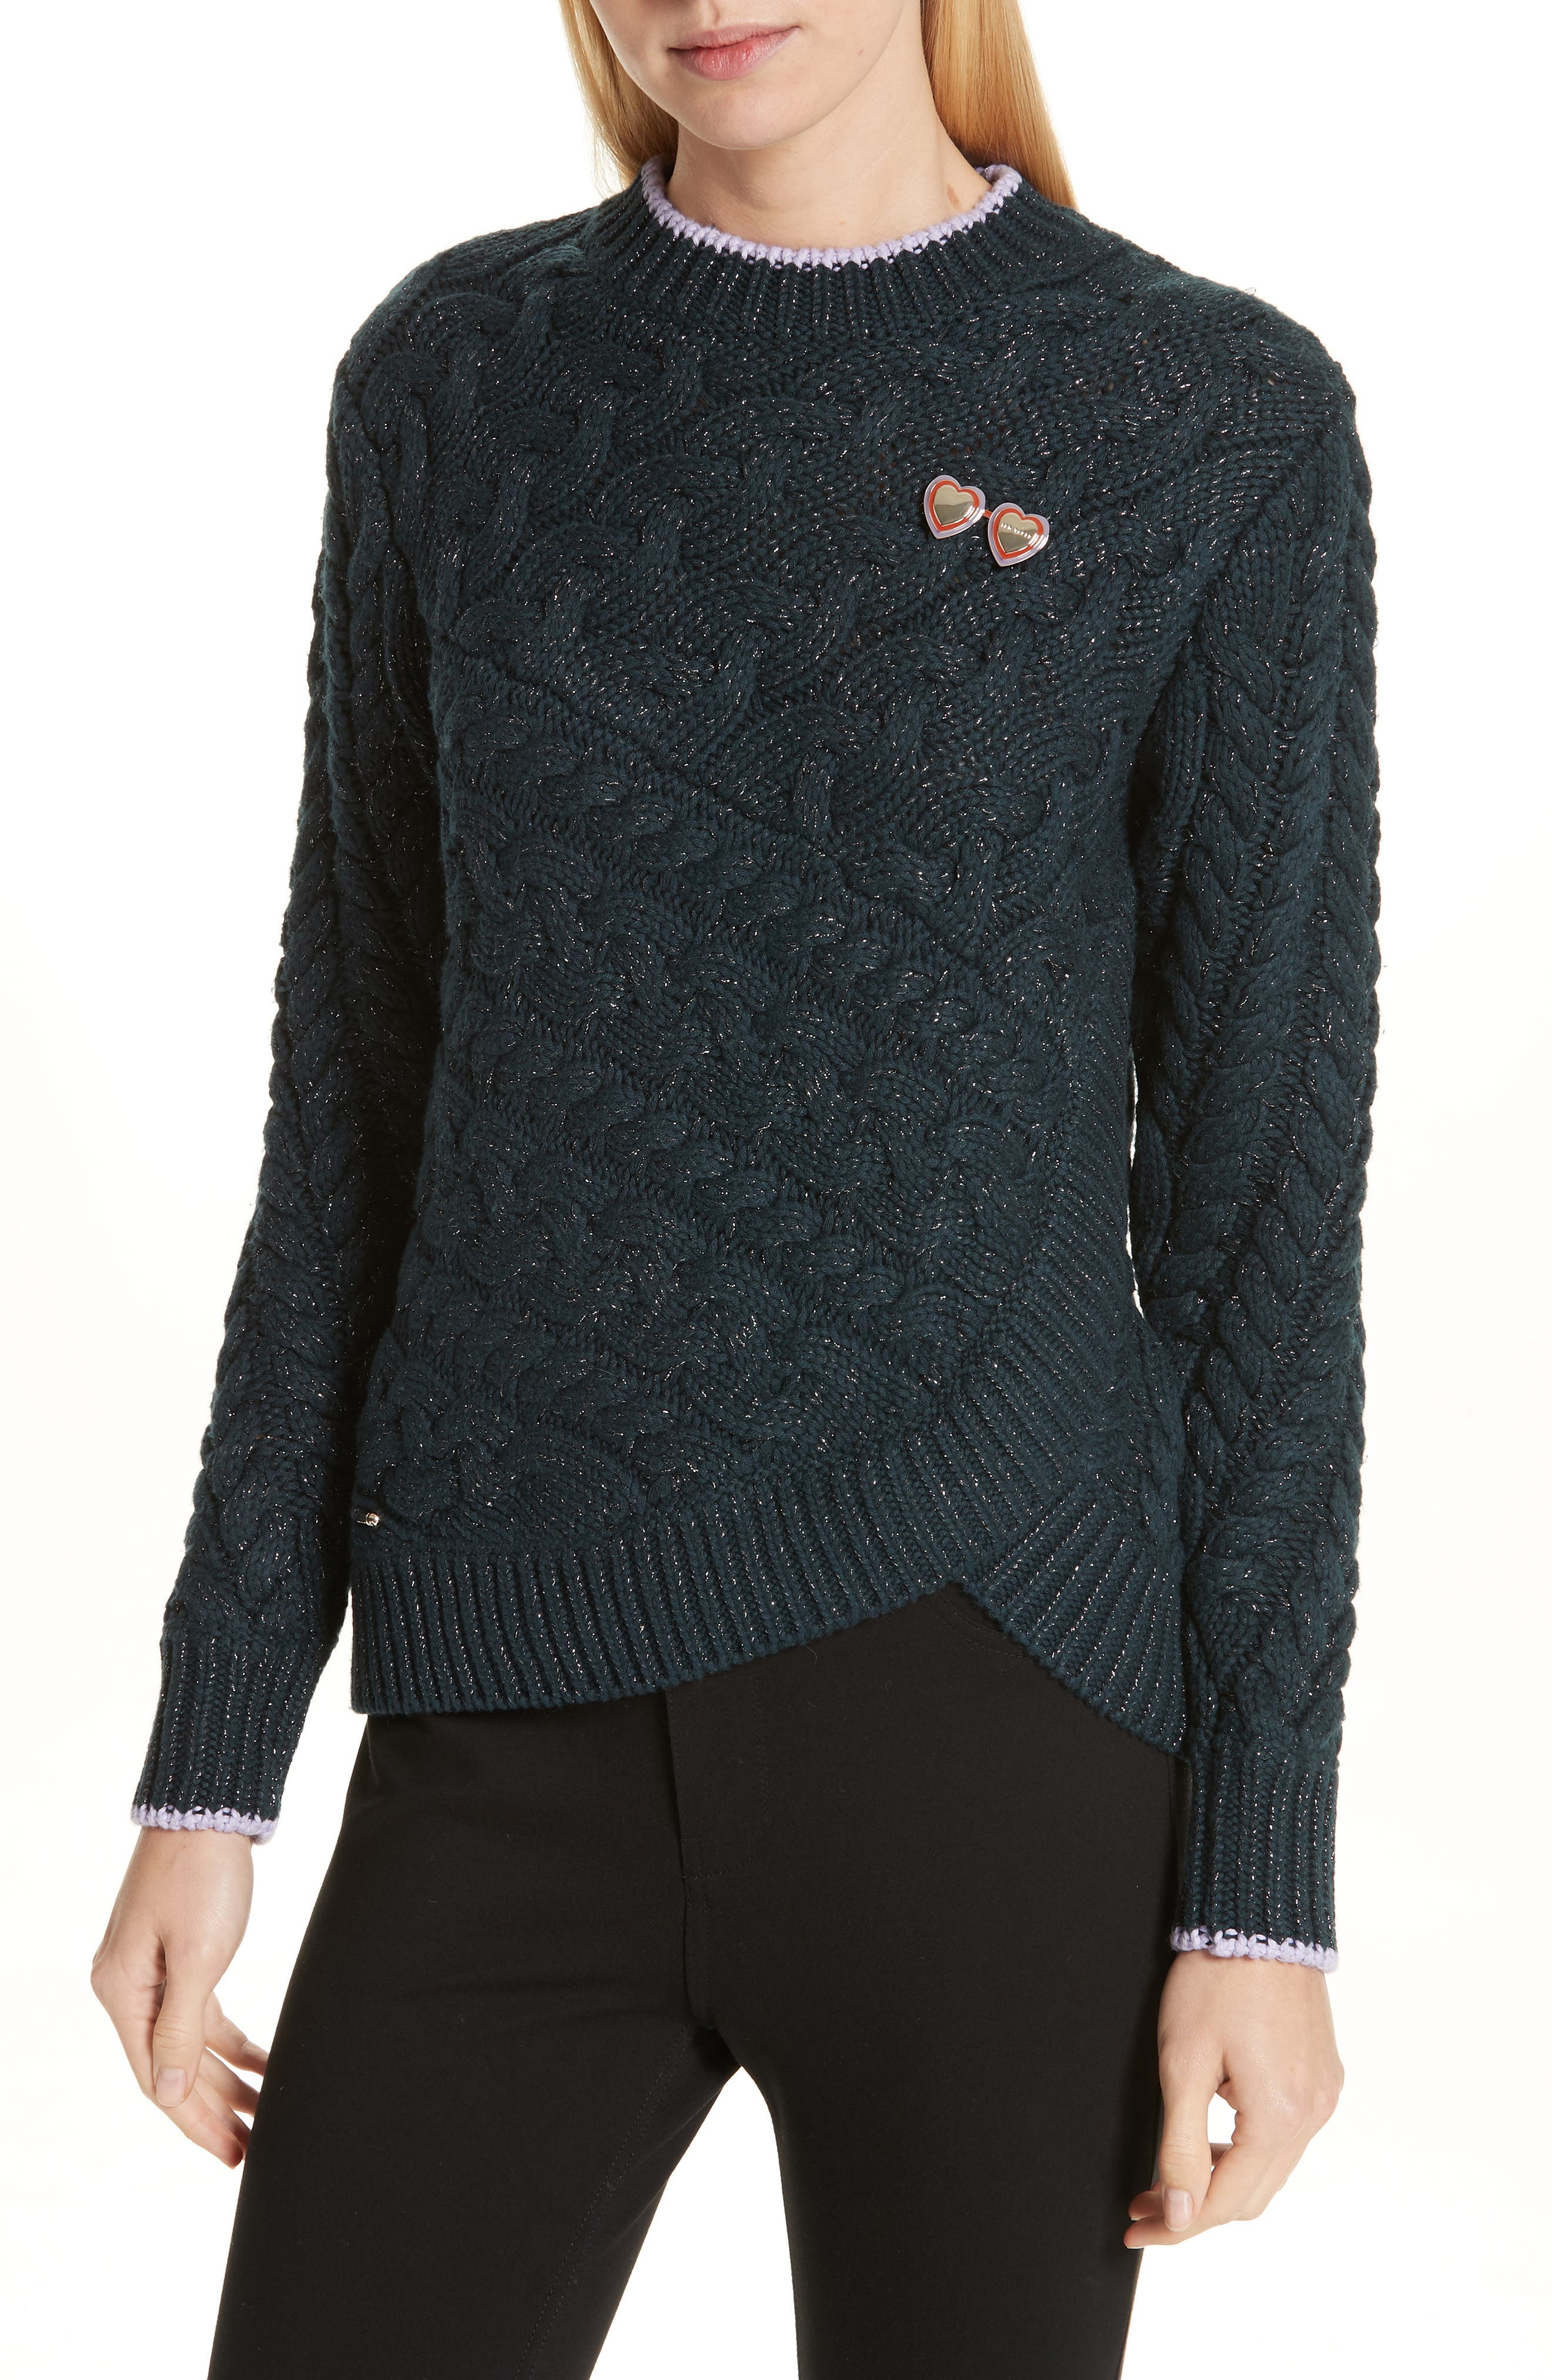 Colour by Numbers Charo Cable Knit Sweater,                             Main thumbnail 1, color,                             301